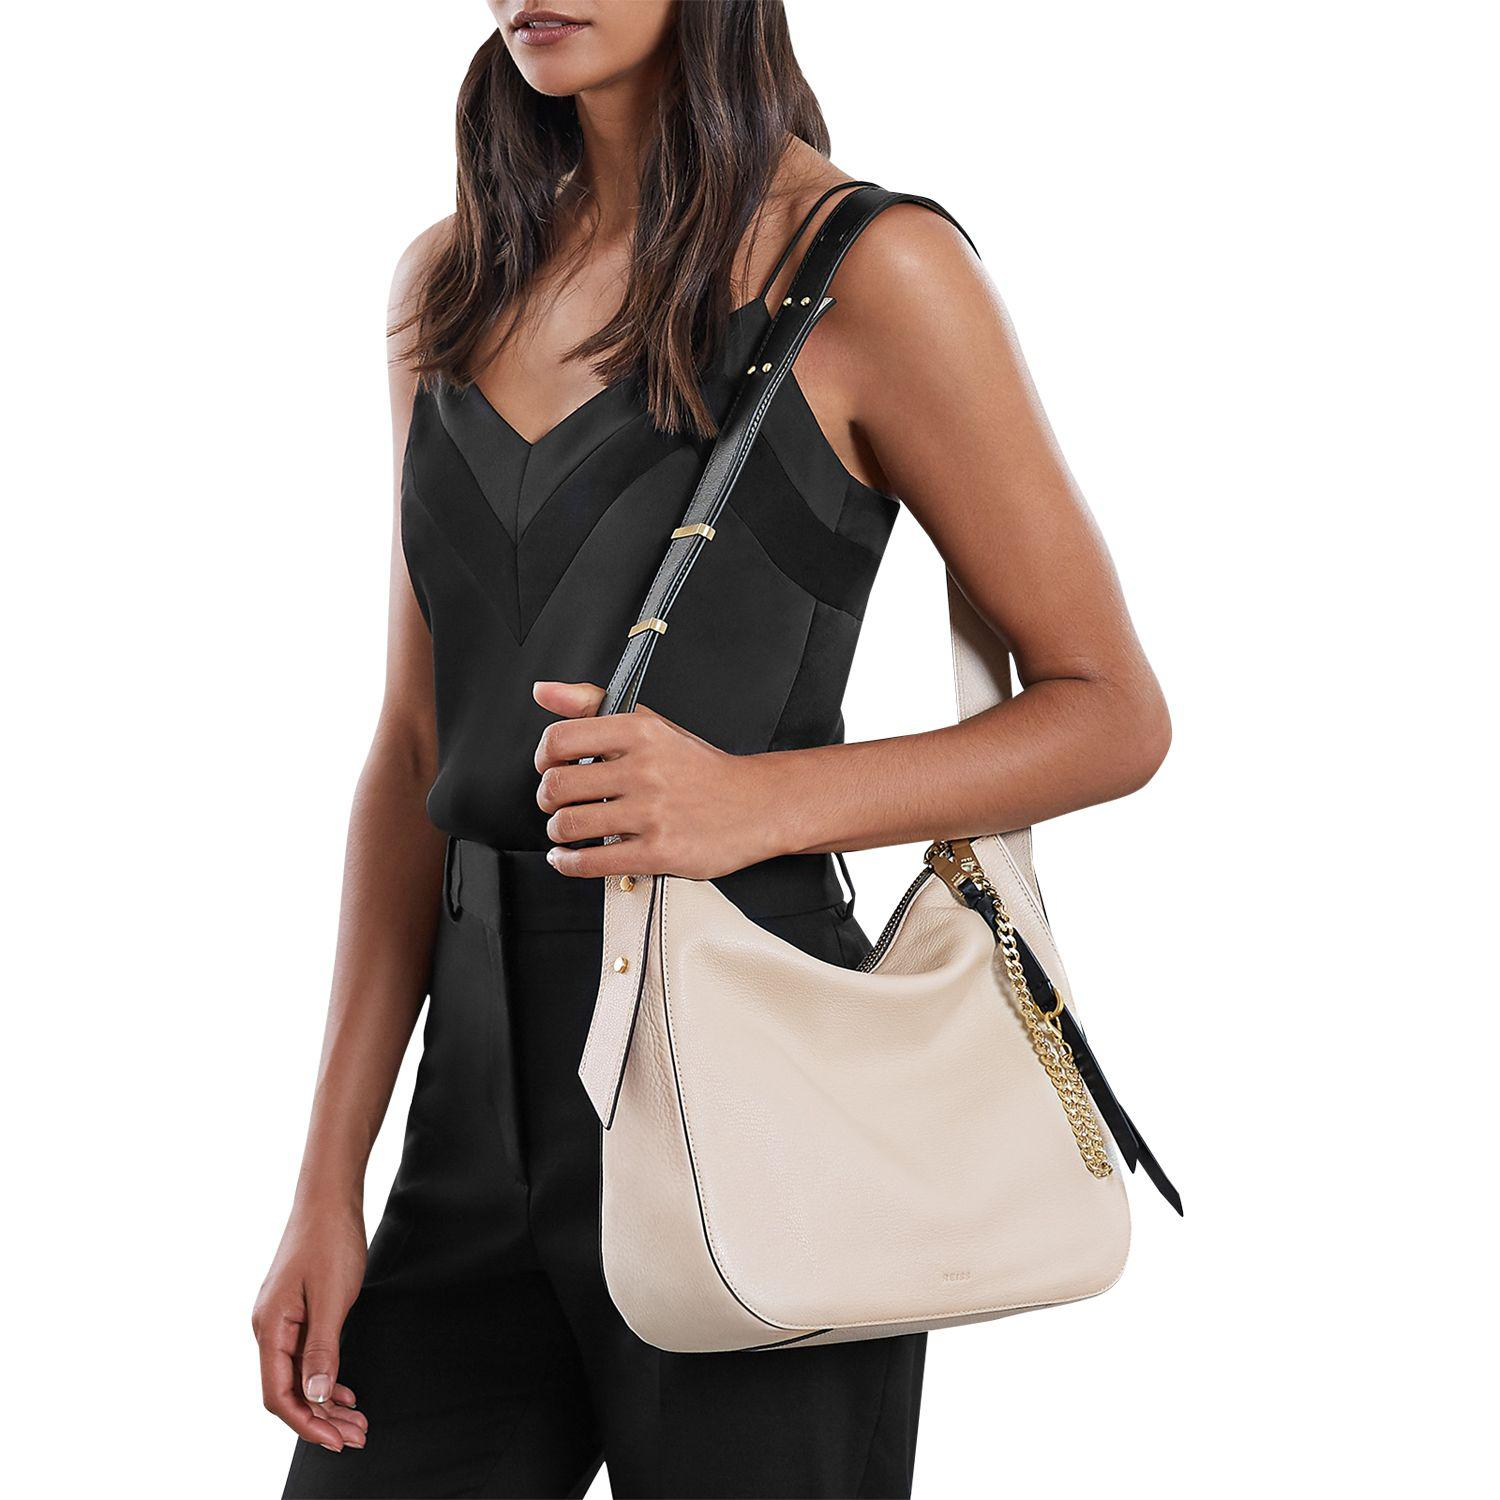 248b074644 Reiss Willow Leather Relaxed Shoulder Bag in White - Lyst